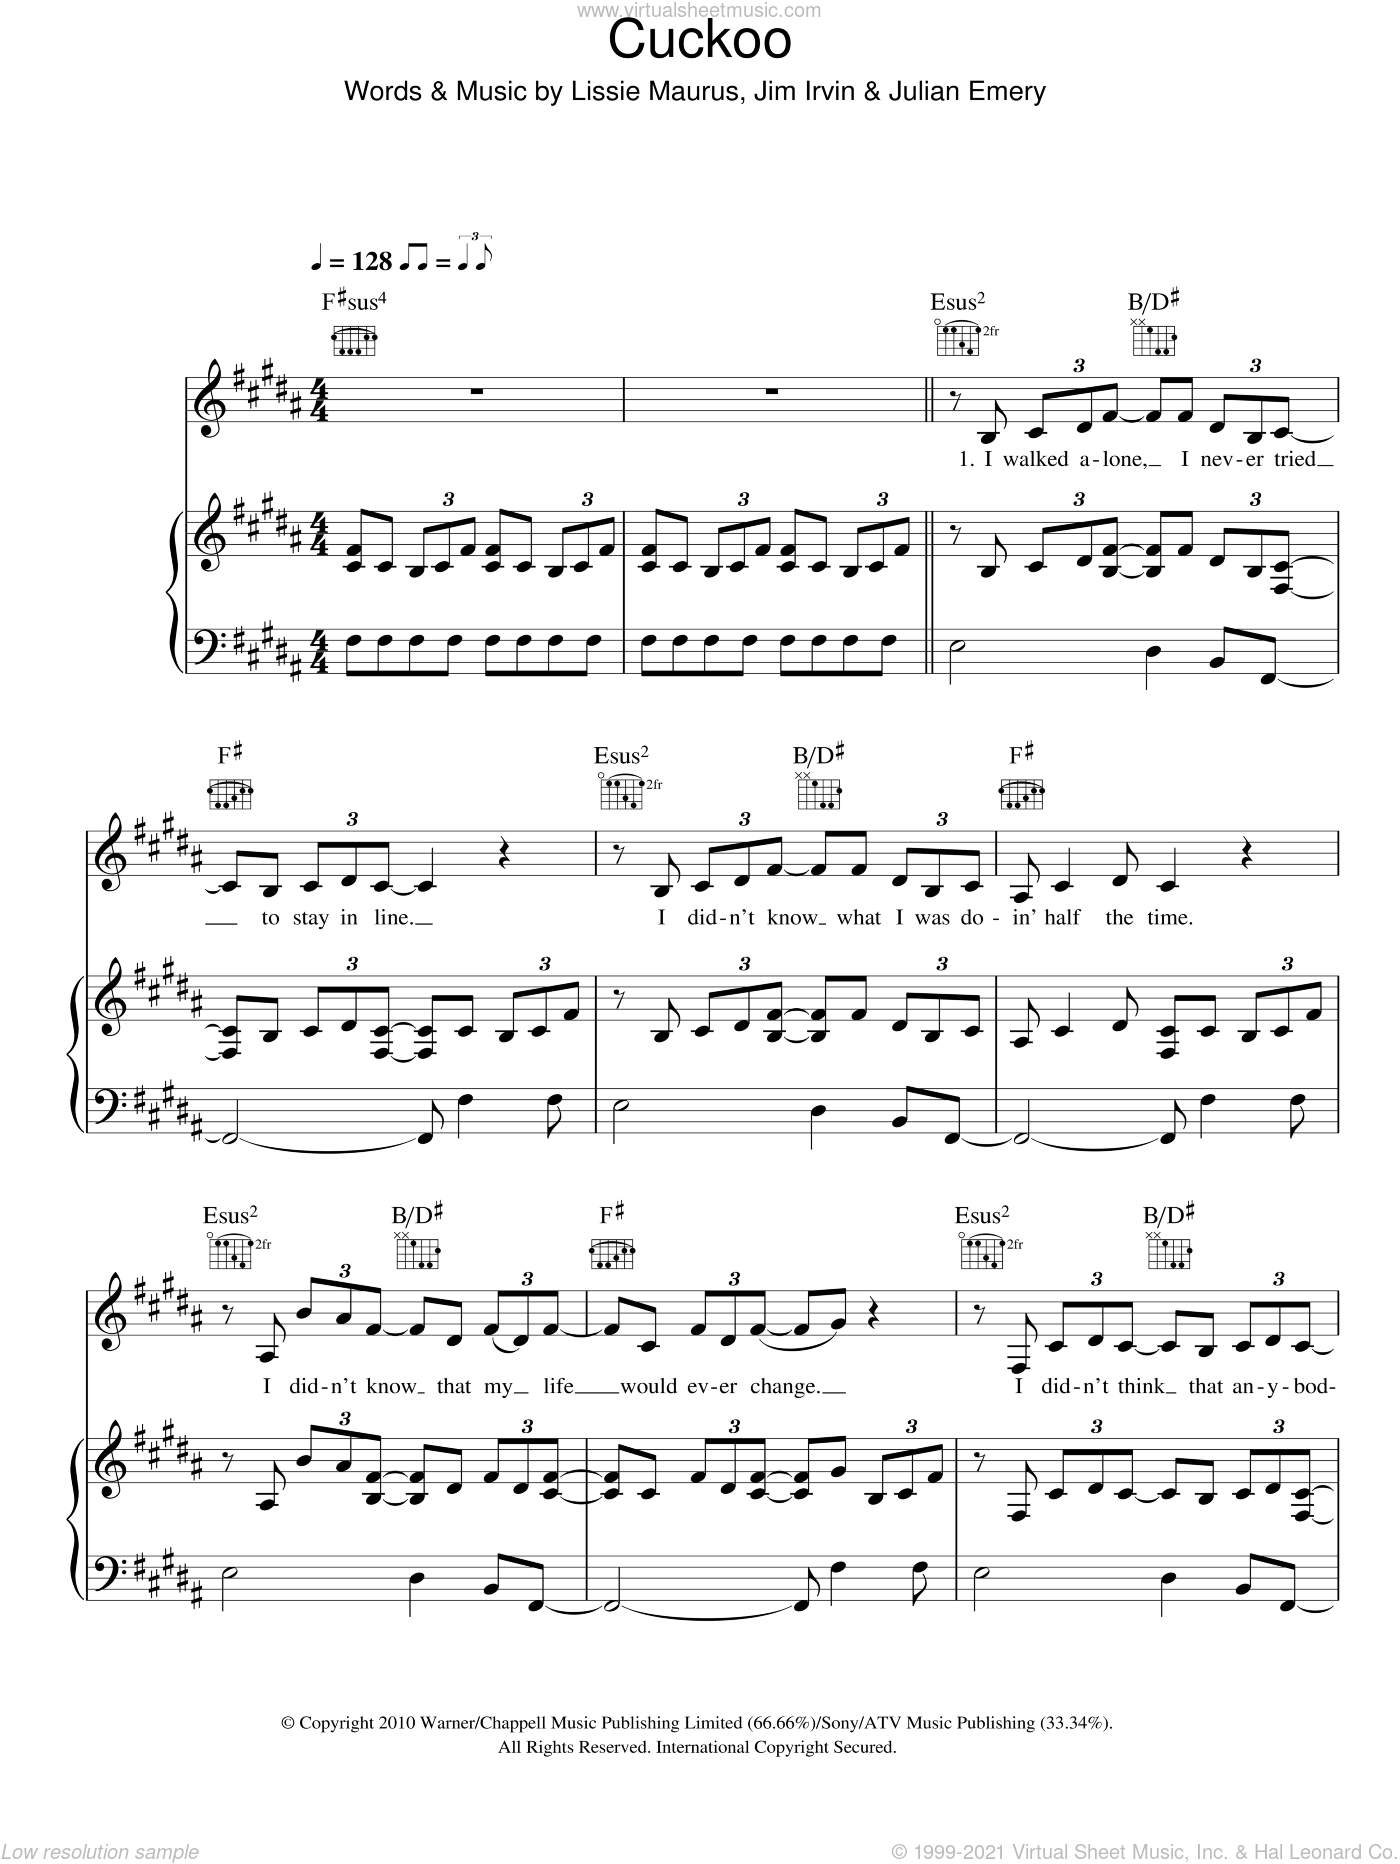 Cuckoo sheet music for voice, piano or guitar by Lissie Maurus